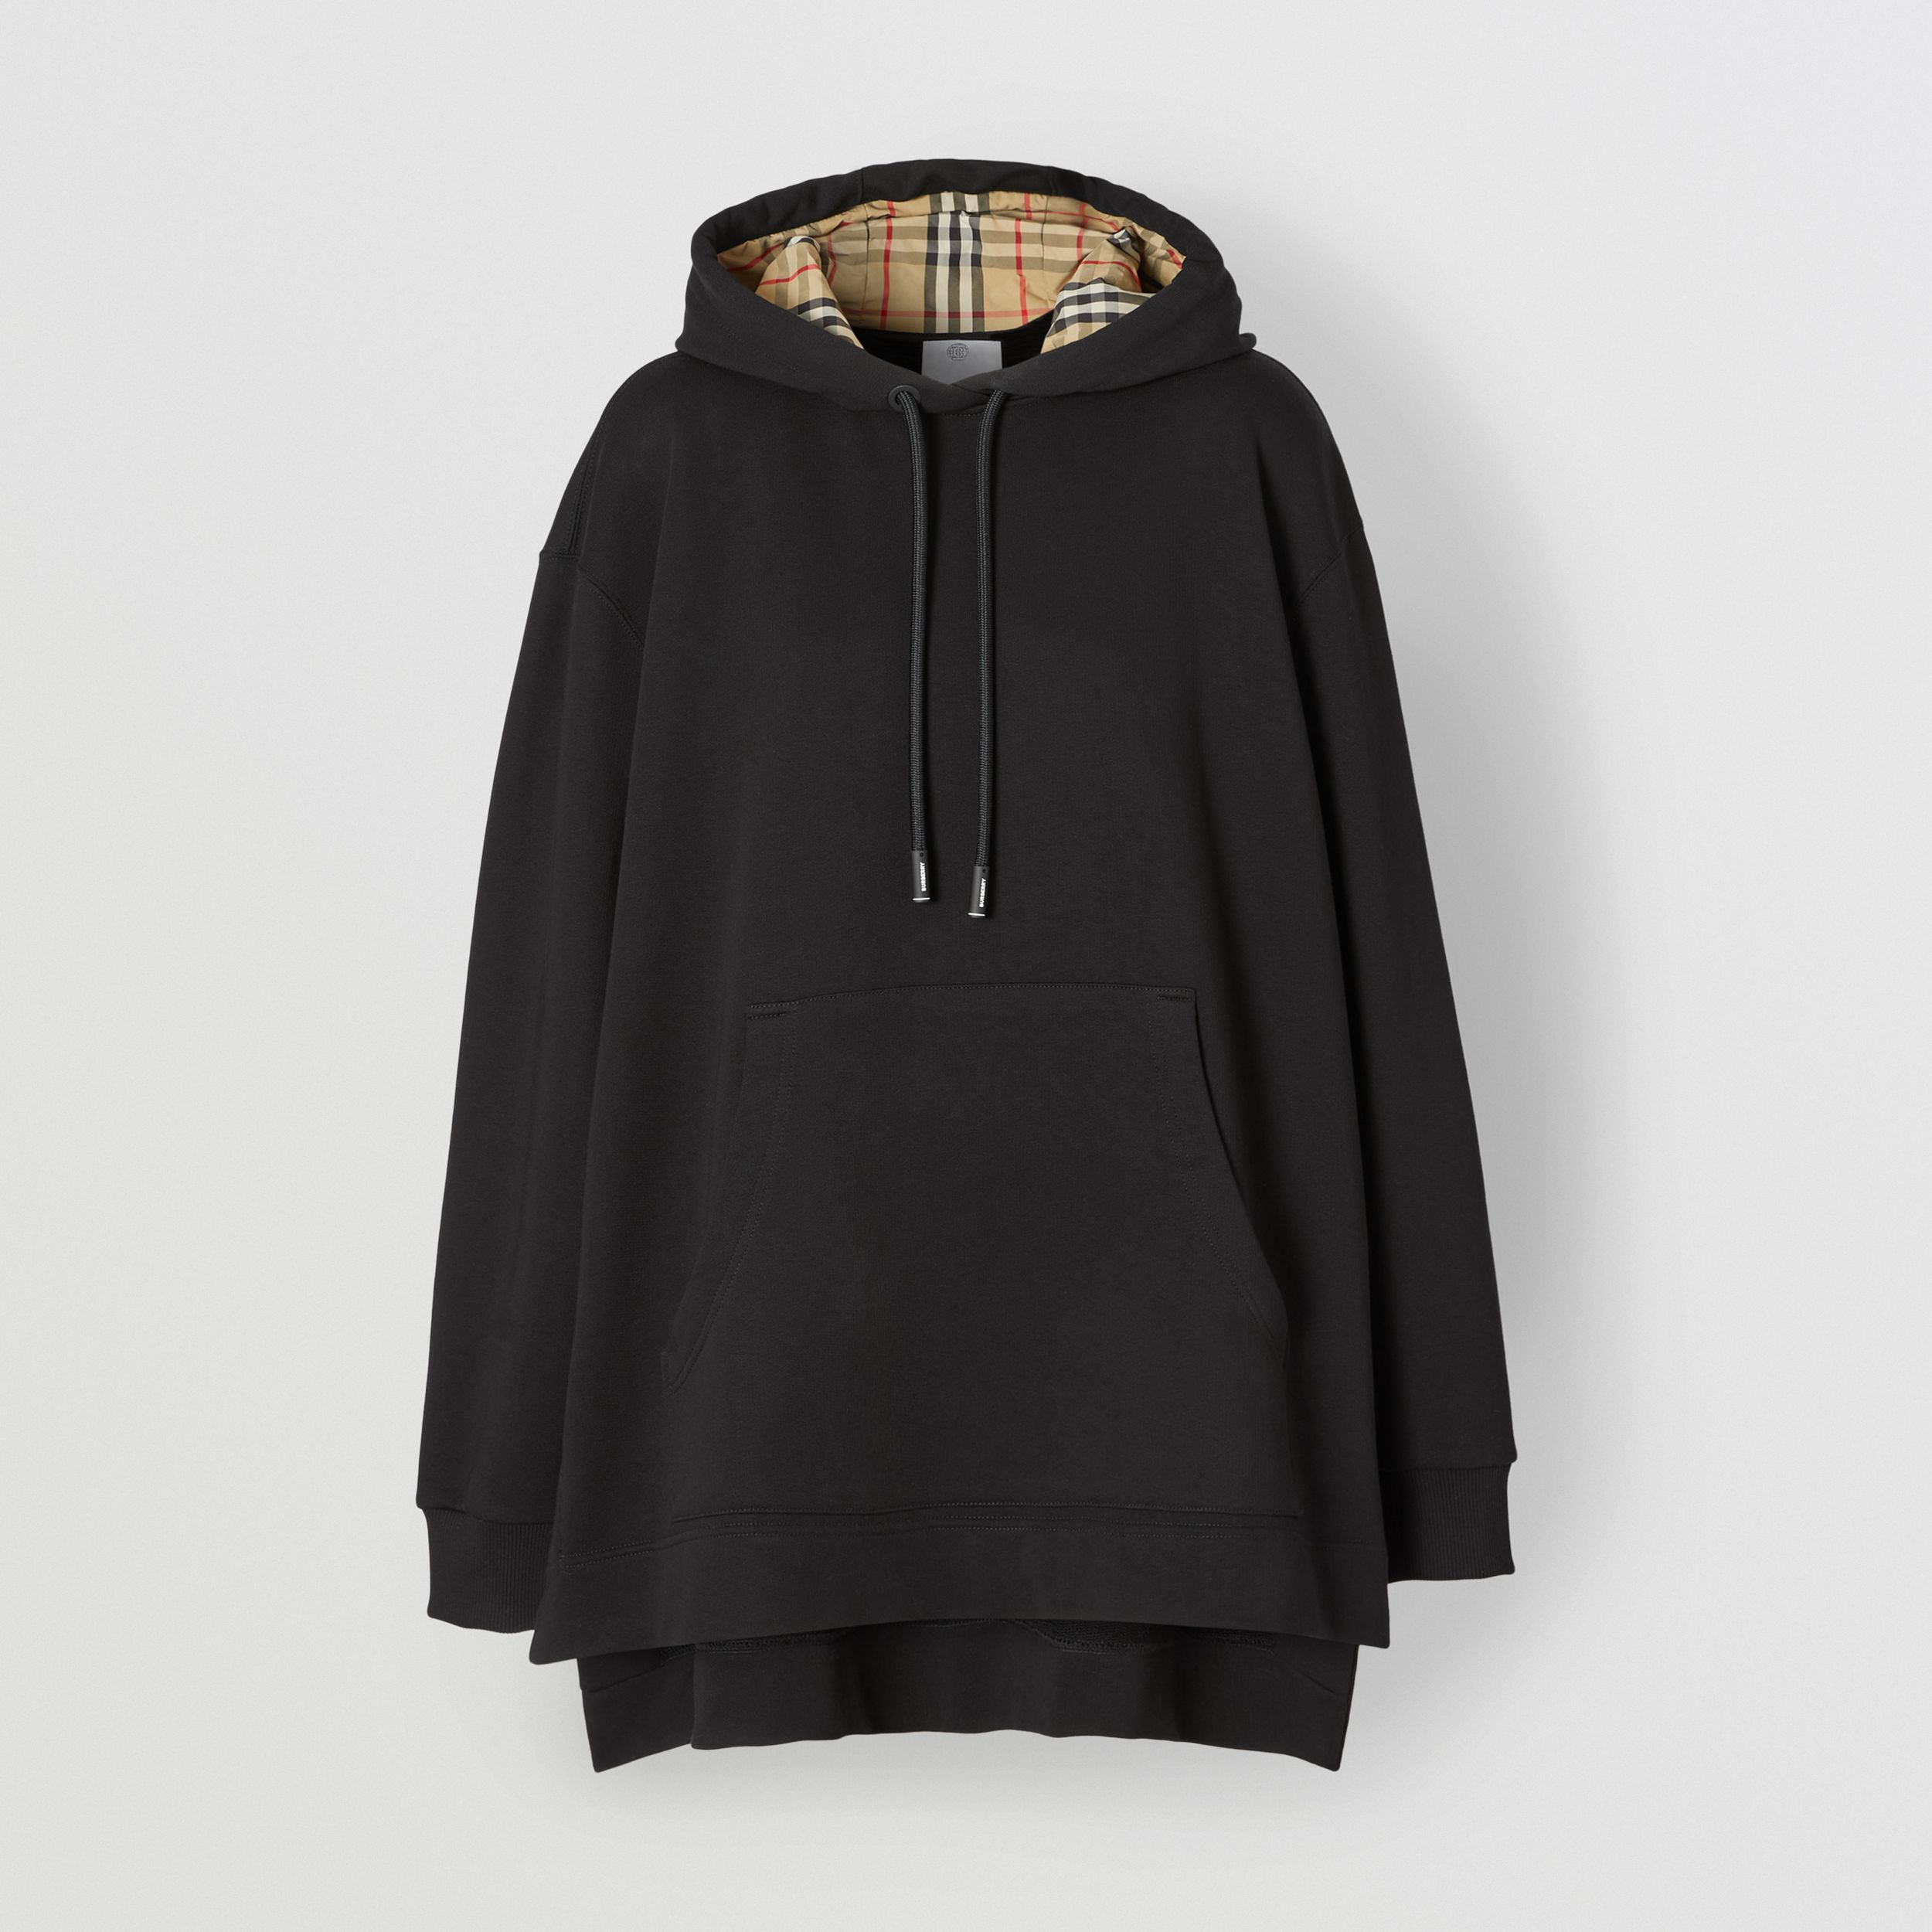 Stepped Hem Organic Cotton Oversized Hoodie in Black - Women | Burberry - 4